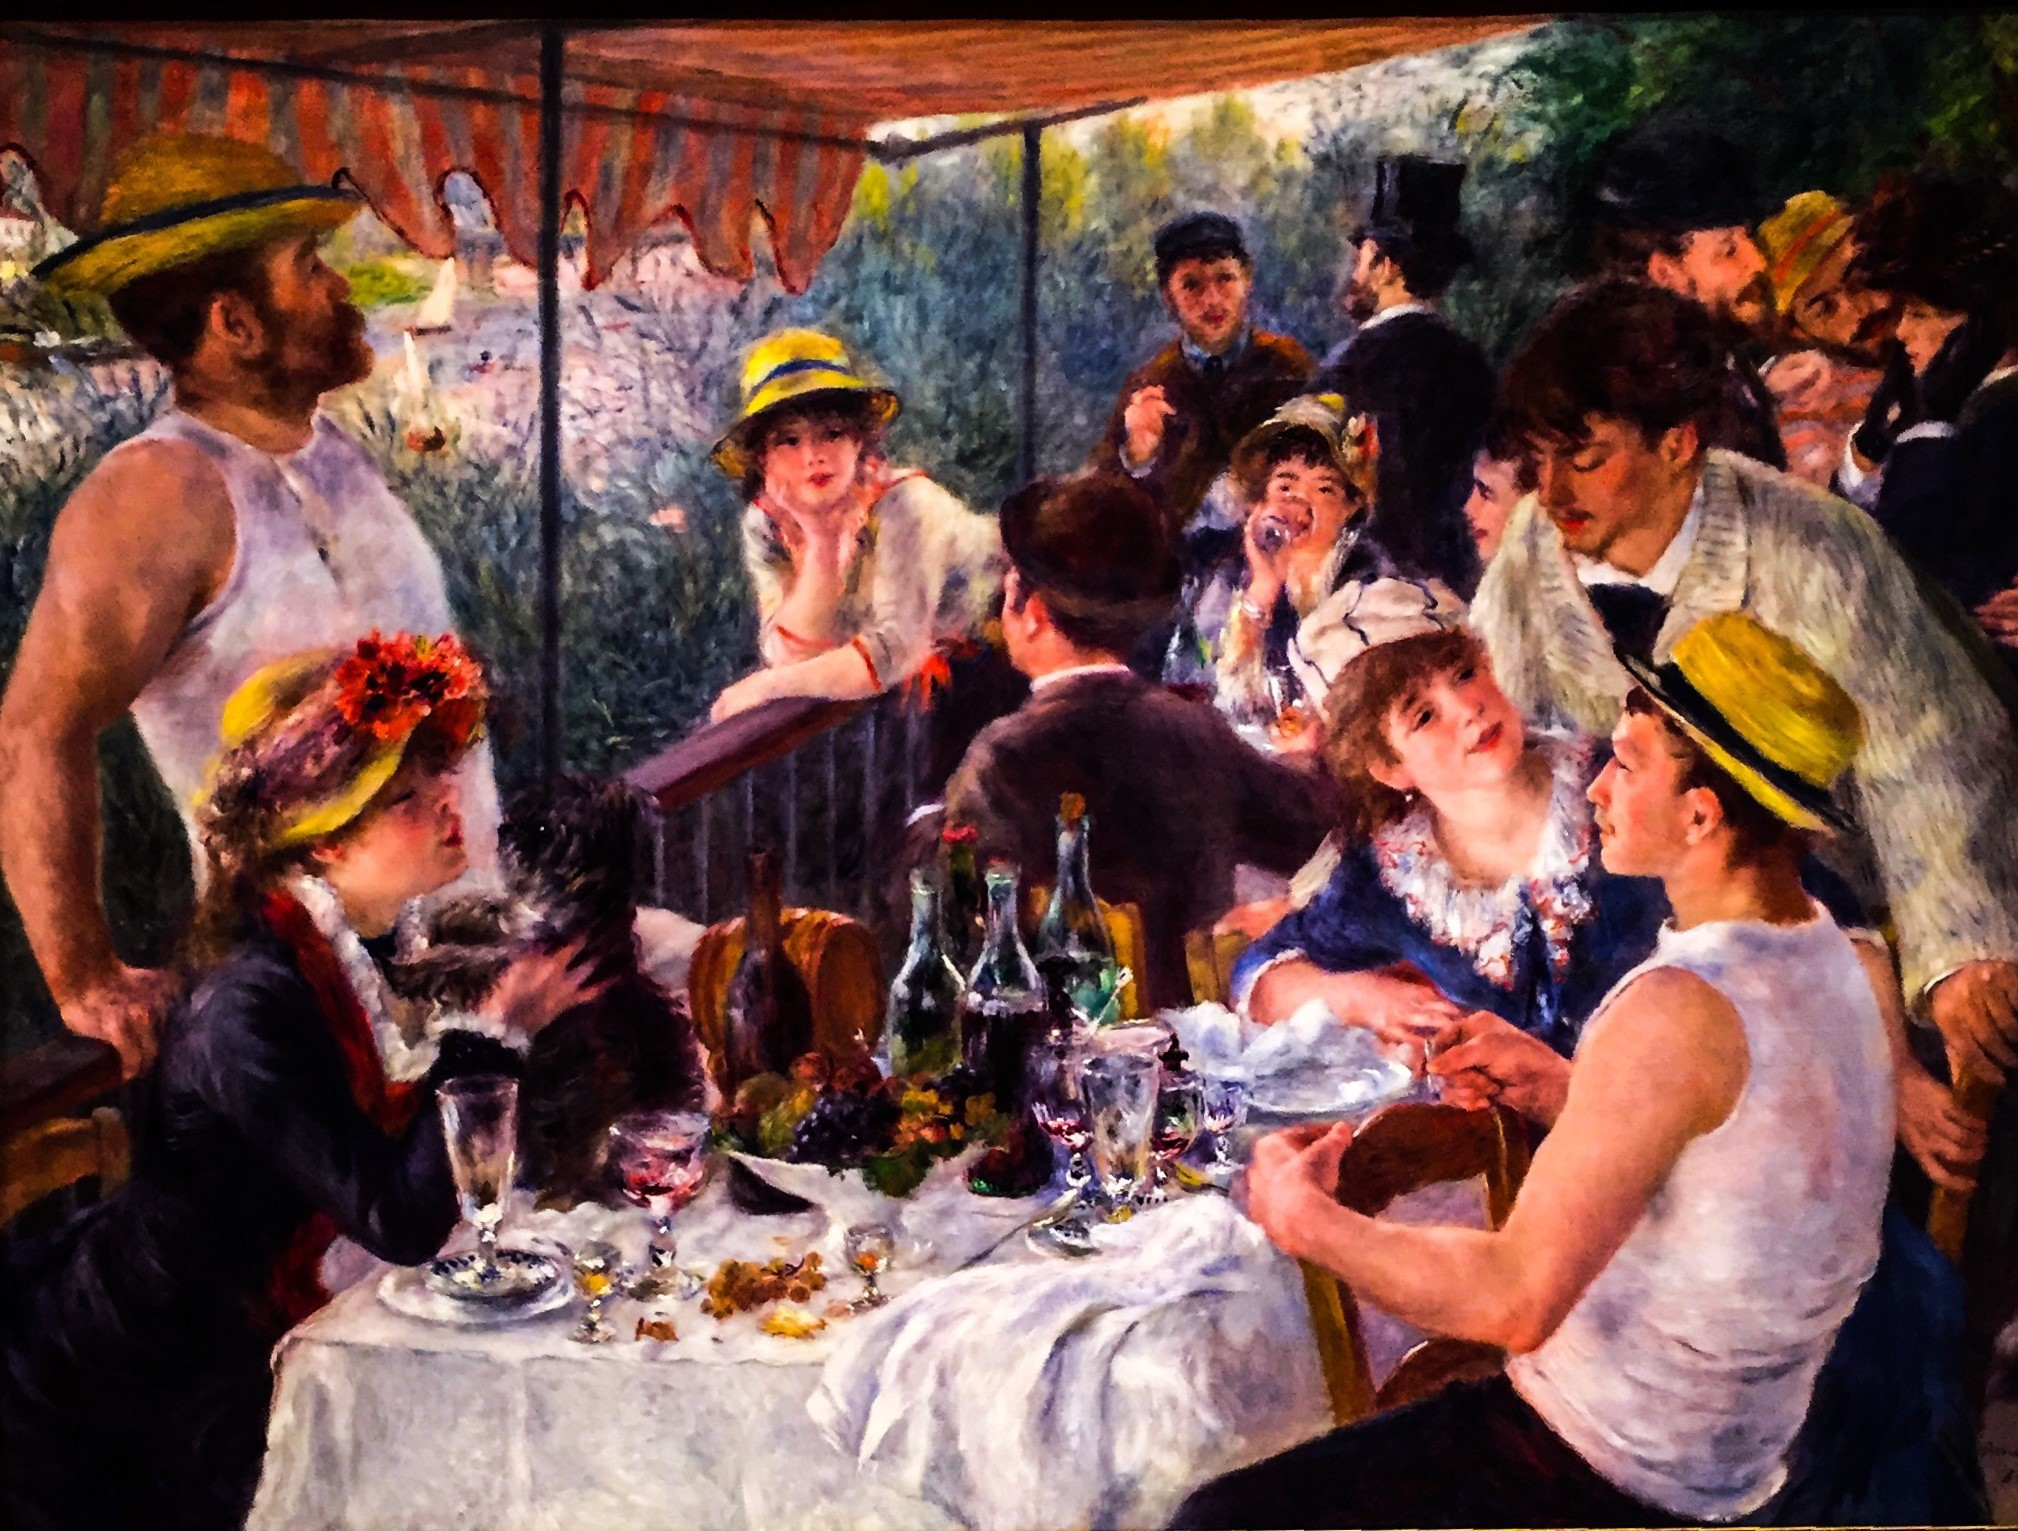 Pierre-Auguste Renoir's Luncheon of the Boating Party at the Phillips Collection in Washington, D.C. Photo credit: M. Ciavardini